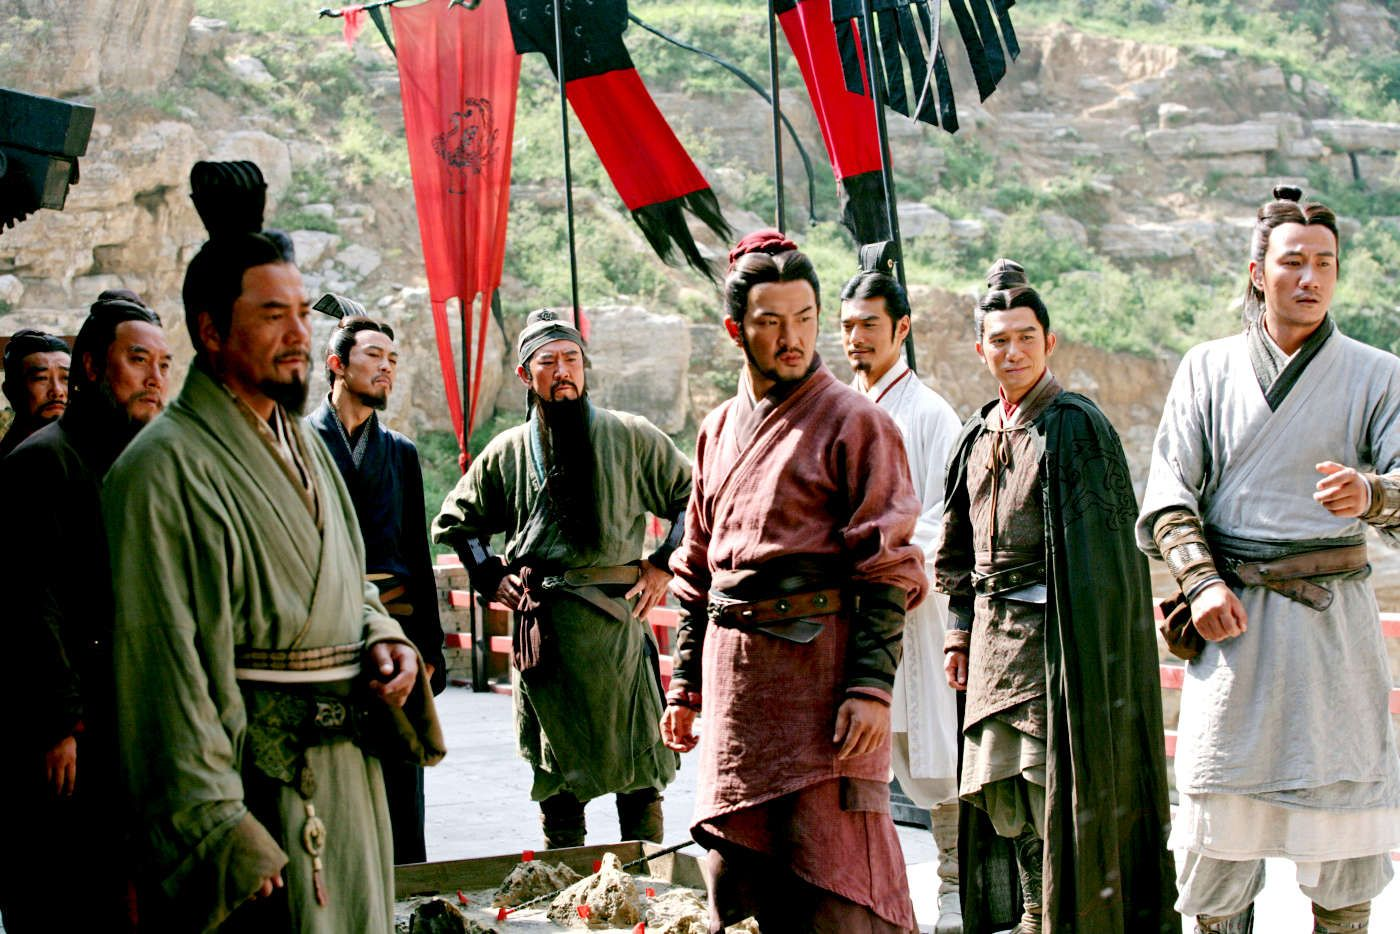 red cliff movie Watch red cliff, red cliff full free movie online hd in 208 ad, in the final days of the han dynasty, shrewd prime minster cao cao convinced the fickle emperor han the only way to unite all of china was to watch4hdcom.